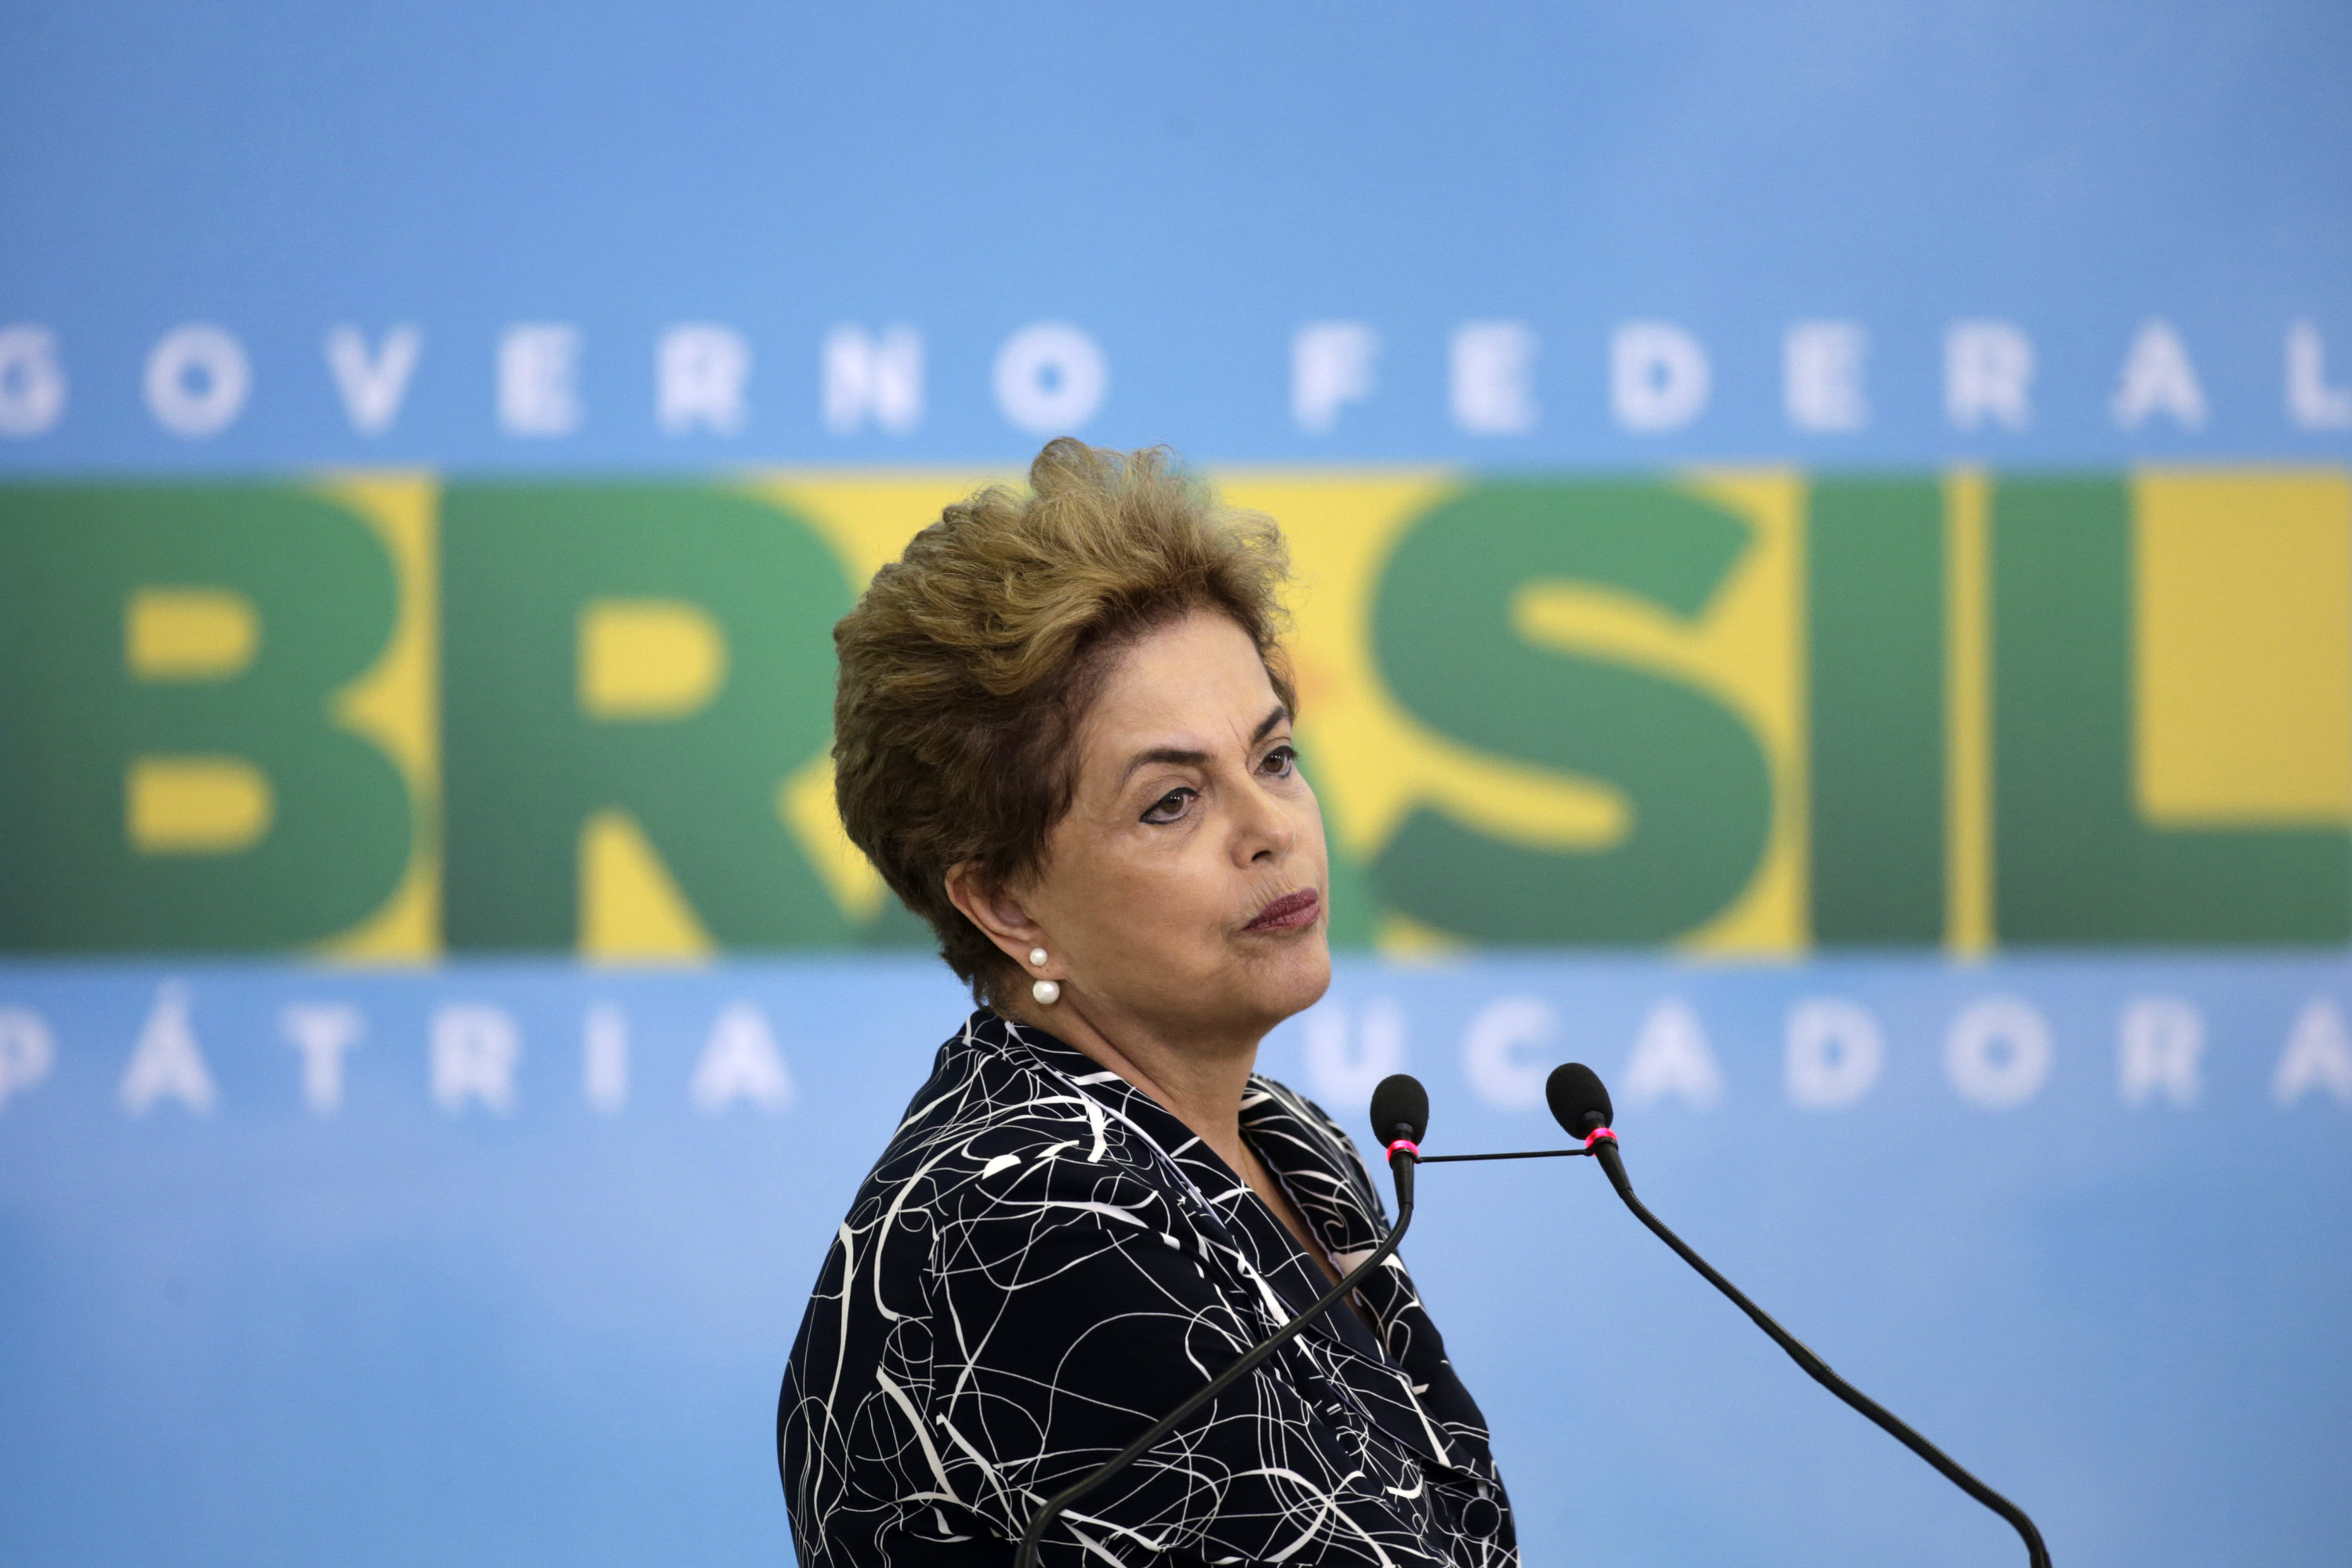 EMBATTLED LEADER. Brazilian President Dilma Rousseff delivers a speech during a ceremony to launch a new phase of the state-funded housing program, at the Planalto Presidential Palace in Brasilia, Brazil, May 6, 2016. File photo by Fernando Bizerra Jr/EPA